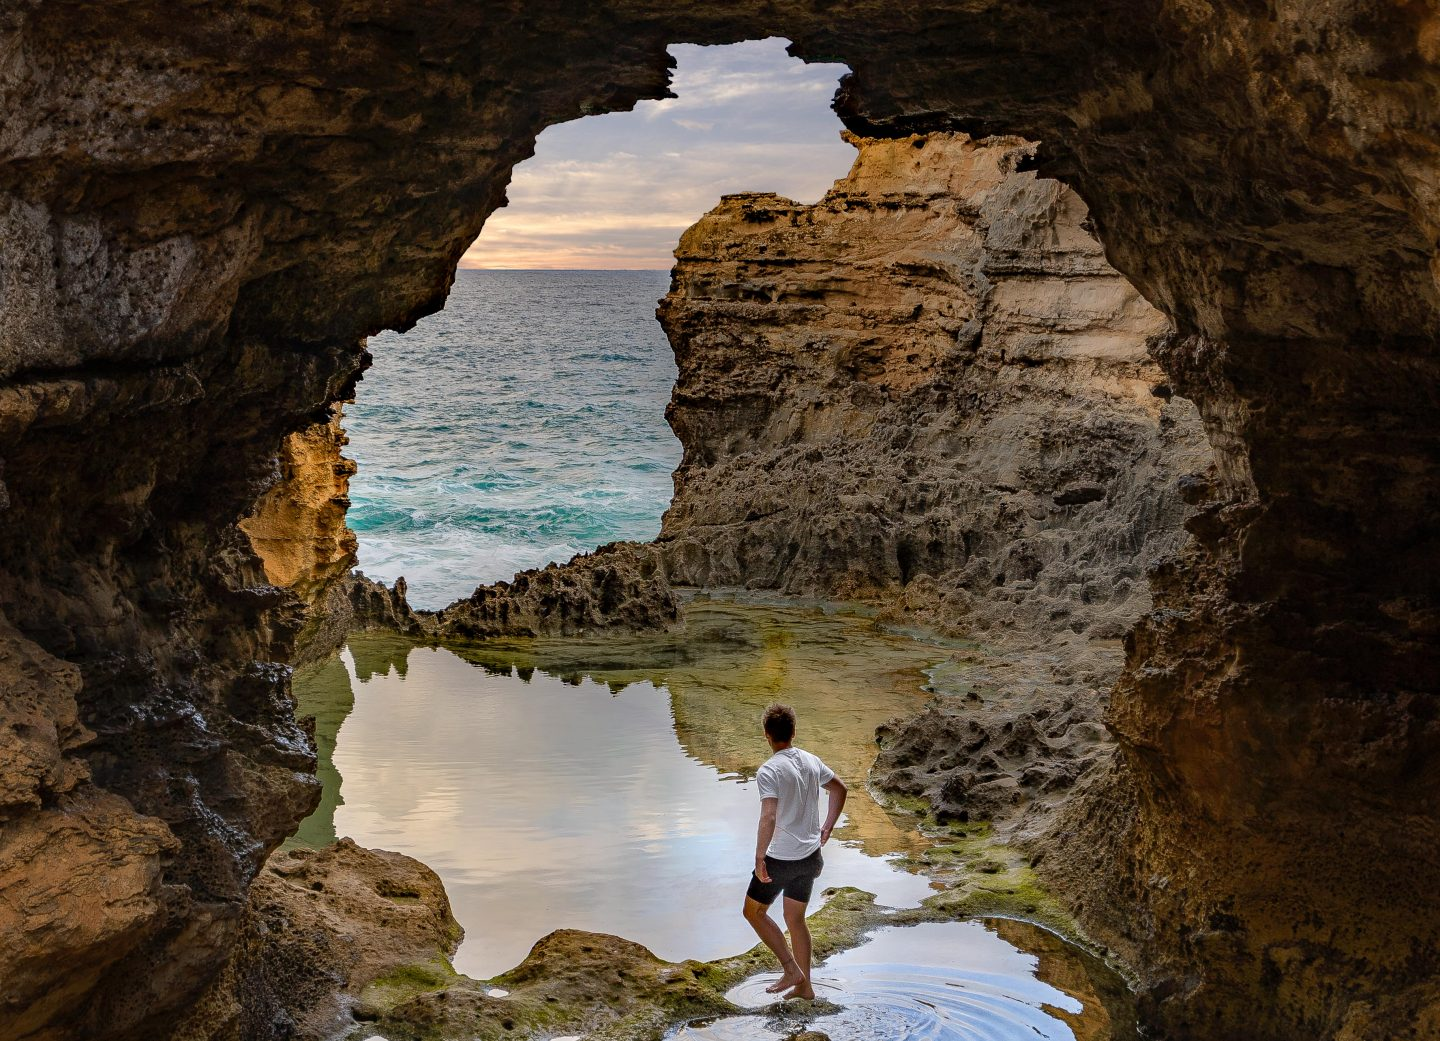 Most Instagrammable Spots on the Great Ocean Road - The Grotto *@livelifeandroam